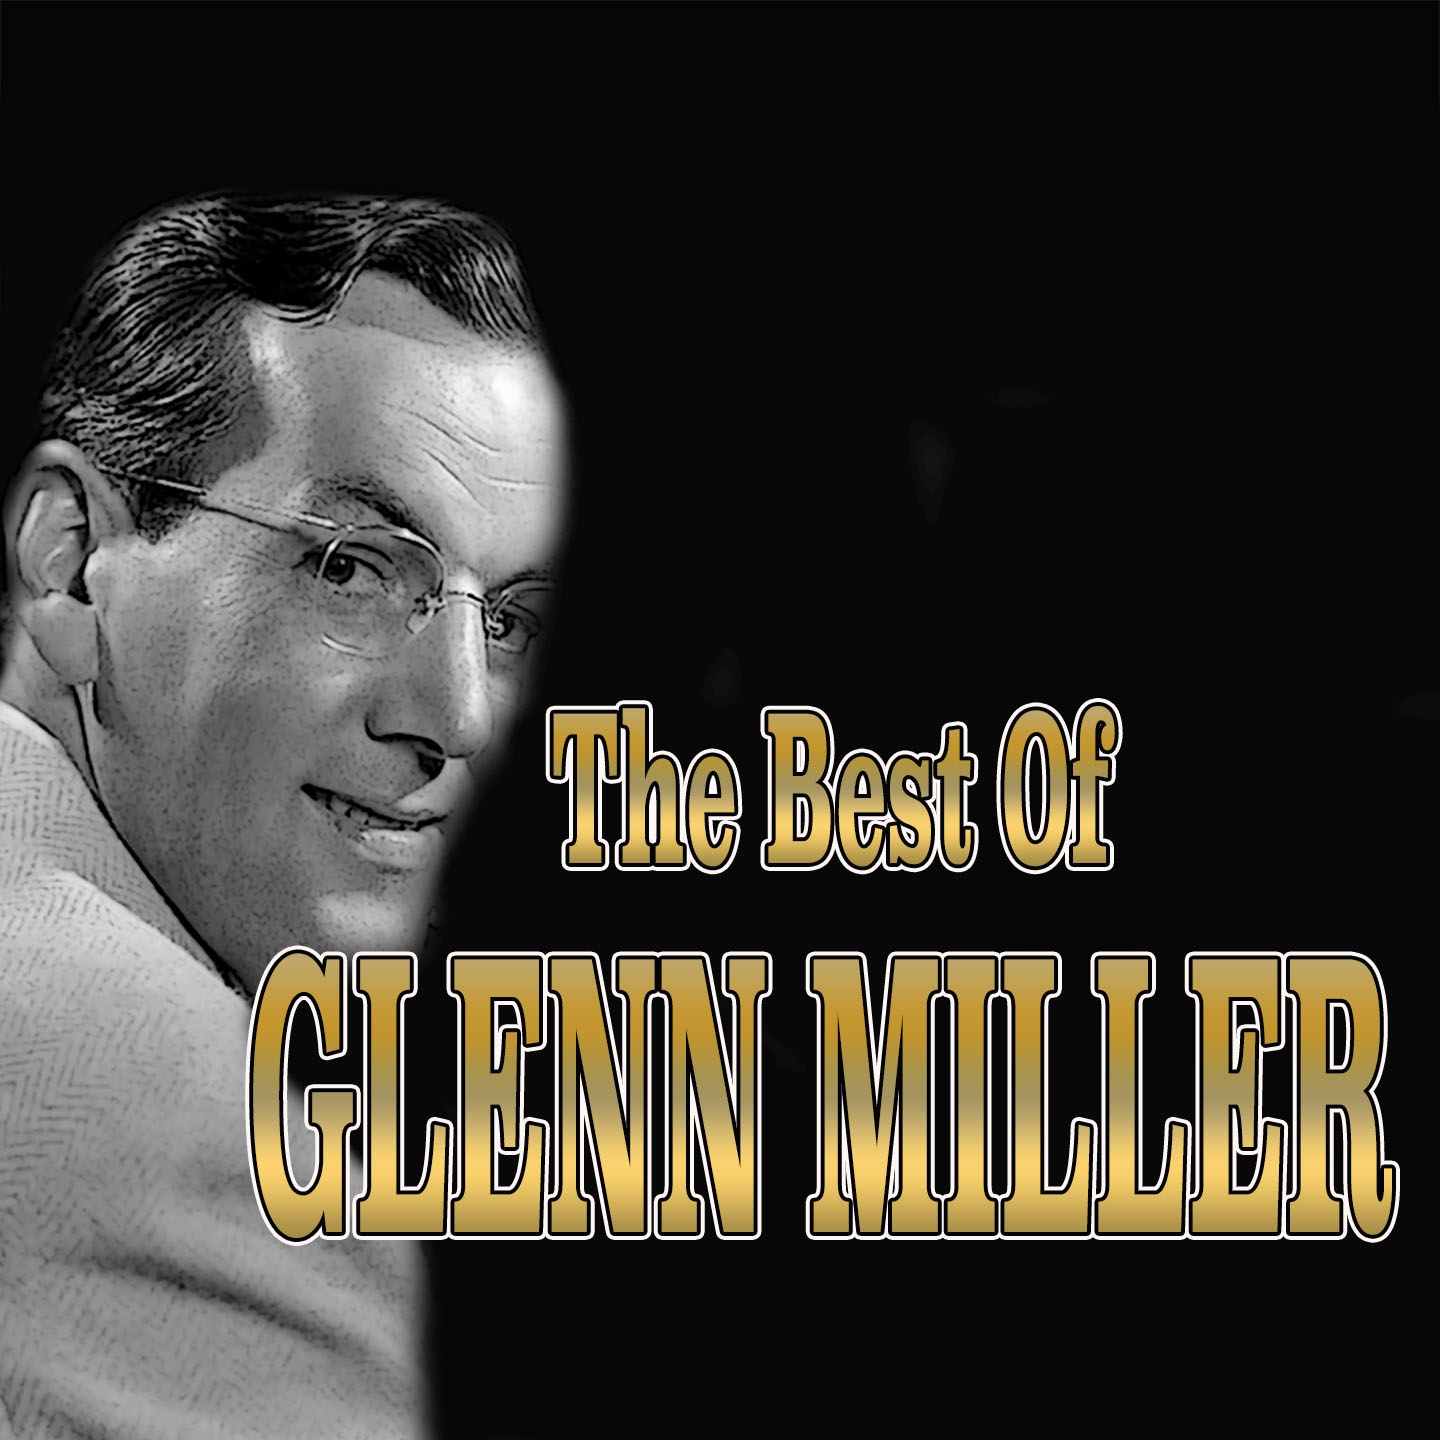 The Best Of Glenn Miller - American Patrol, Moonlight Serenade, And 22 Other Hits